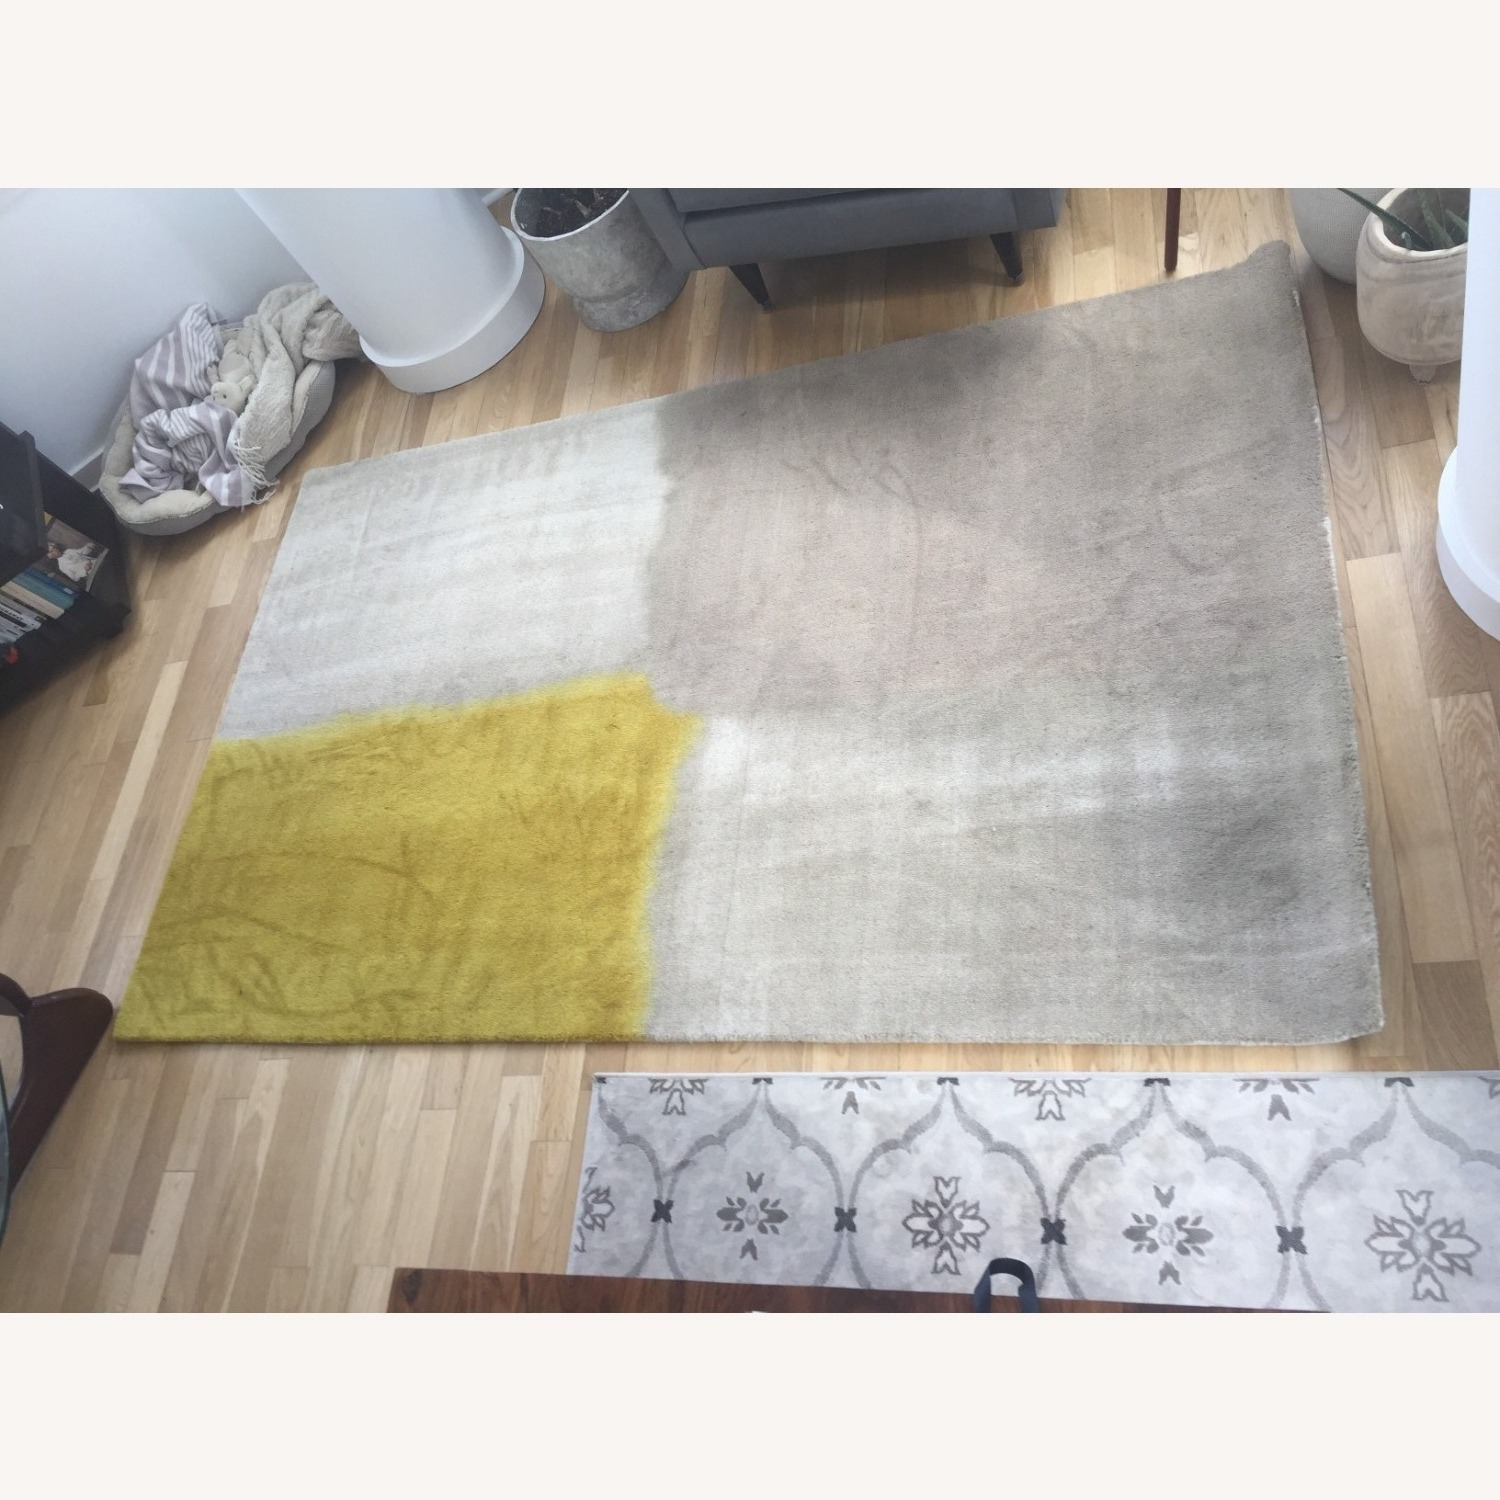 West Elm Area Rug 5' x 8' Frost Gray + Yellow - image-8